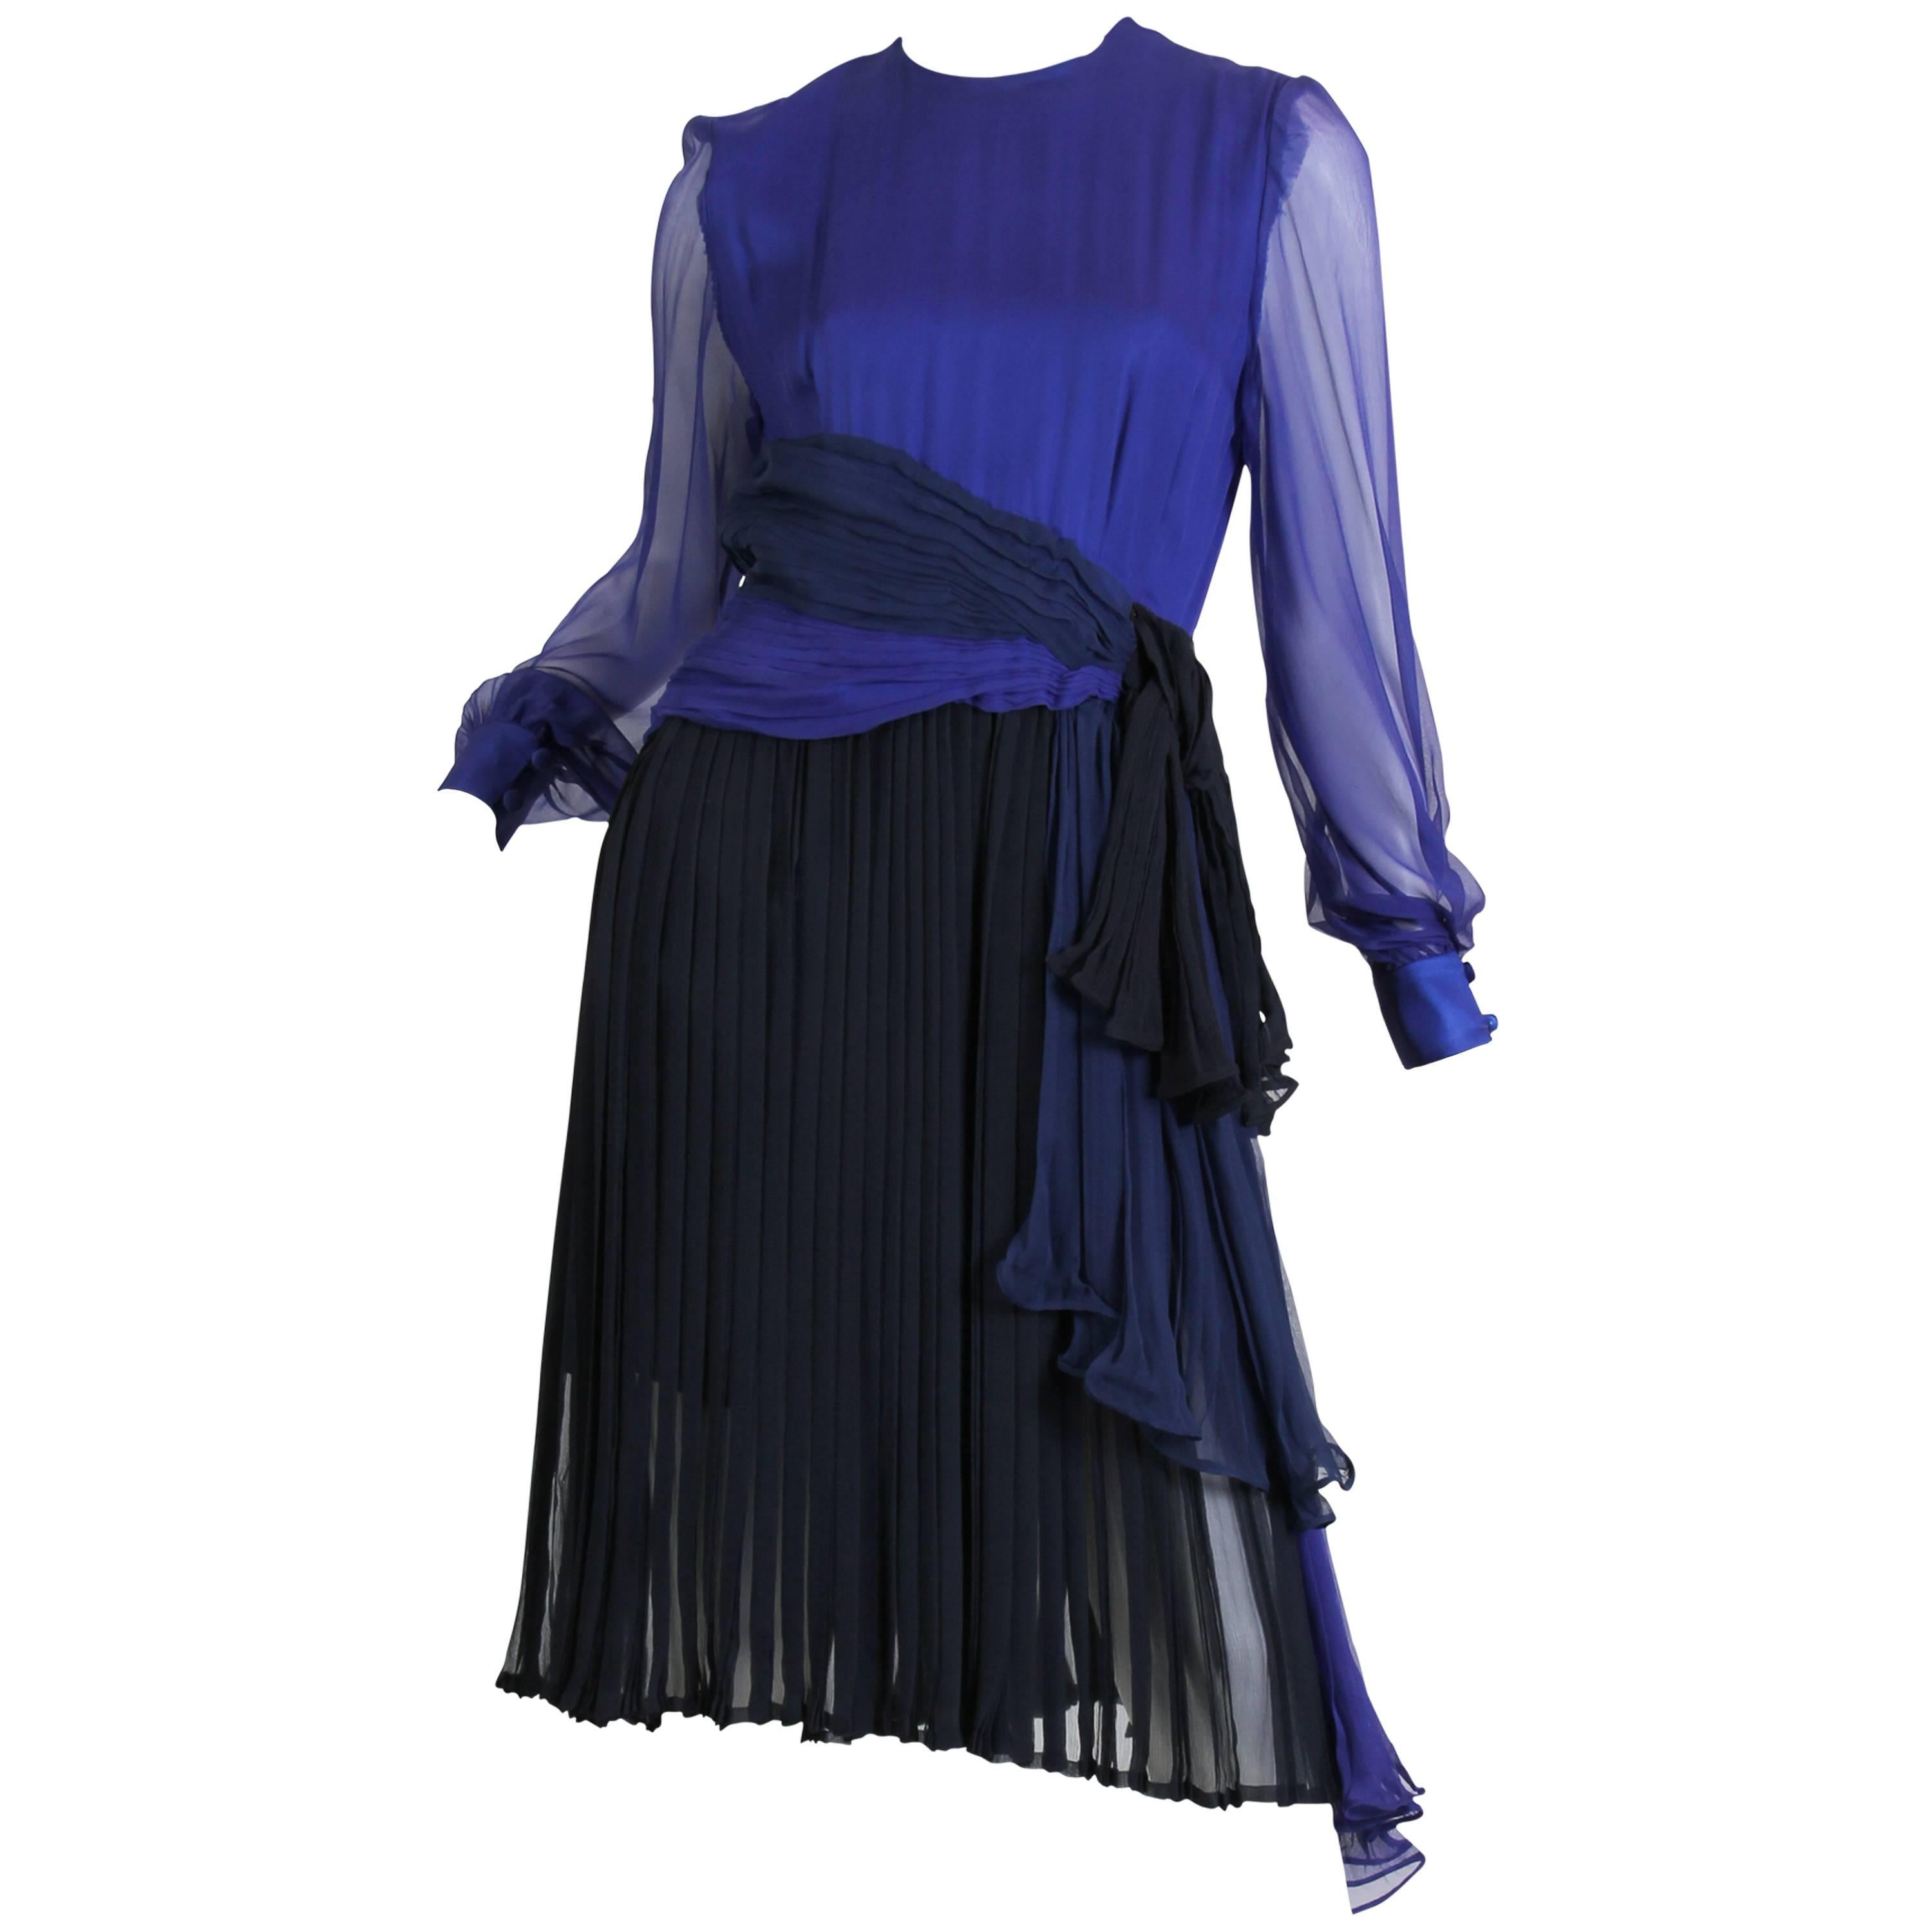 1980s ANDRE LAUG Haute Couture Silk Chiffon Cocktail Dress in Shades of Blues wi